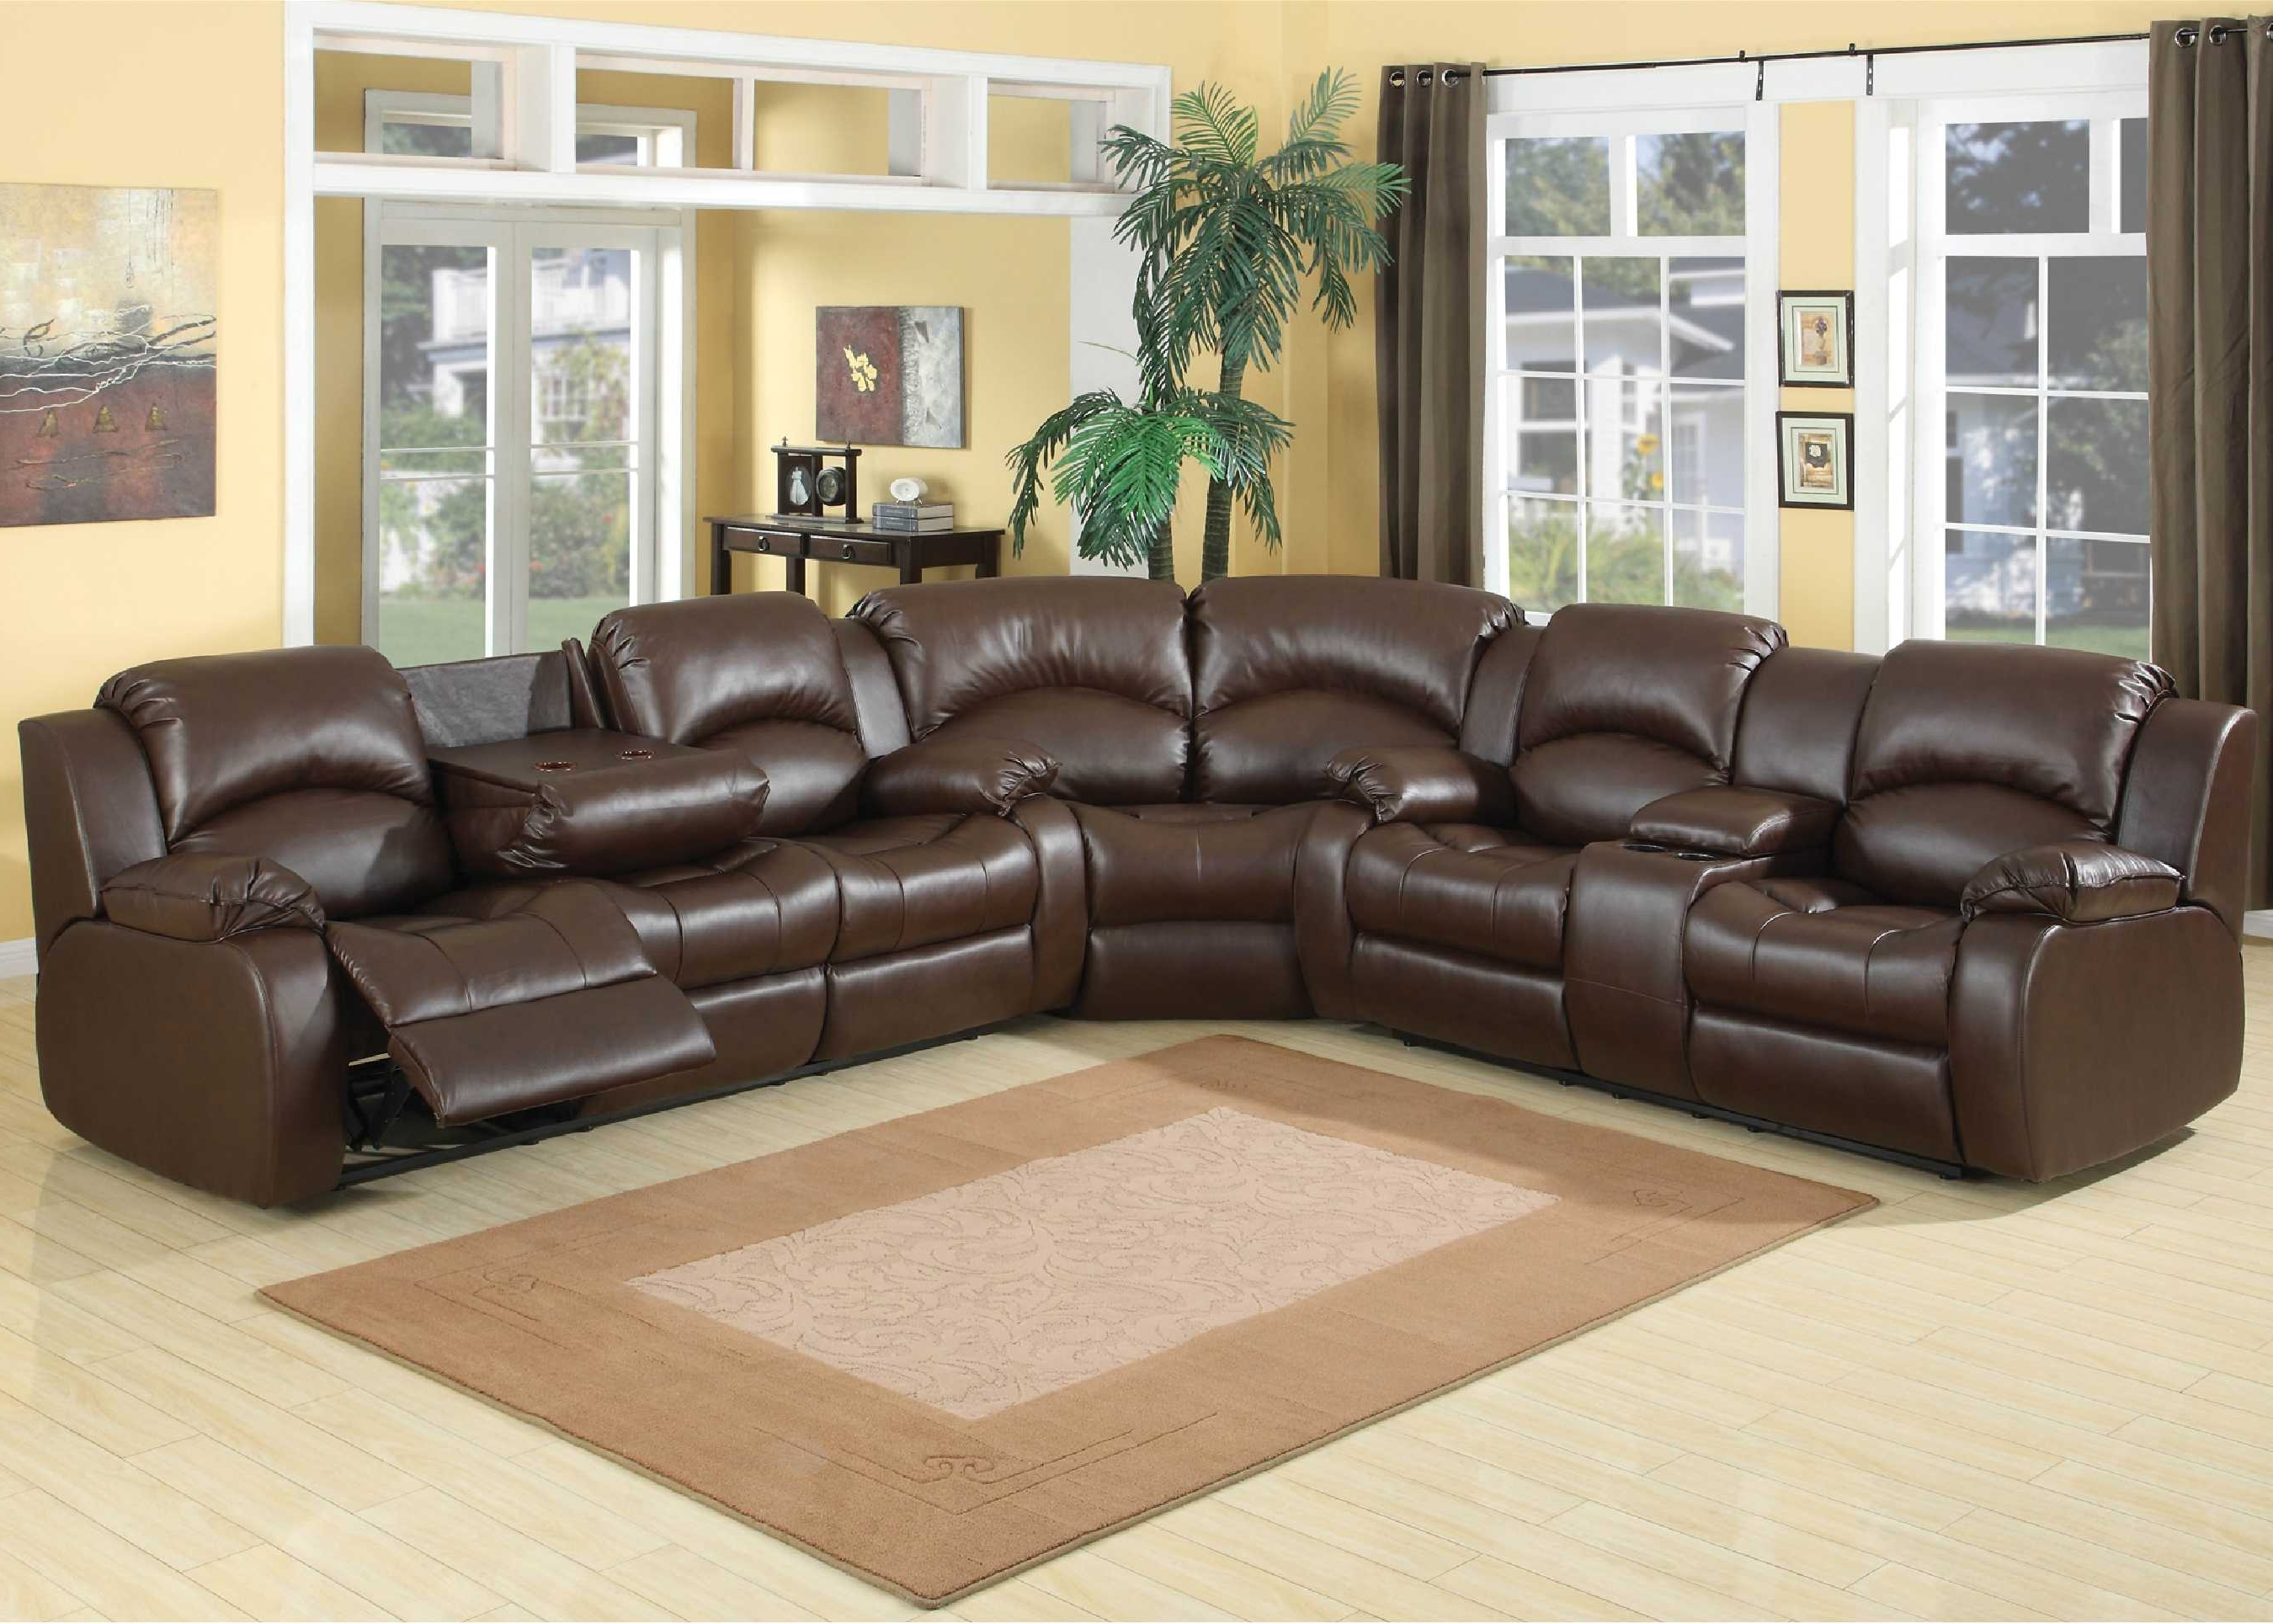 Sectional Sofas With Consoles Pertaining To Recent 16 Theater Sectional Reclining Sofa (View 20 of 20)